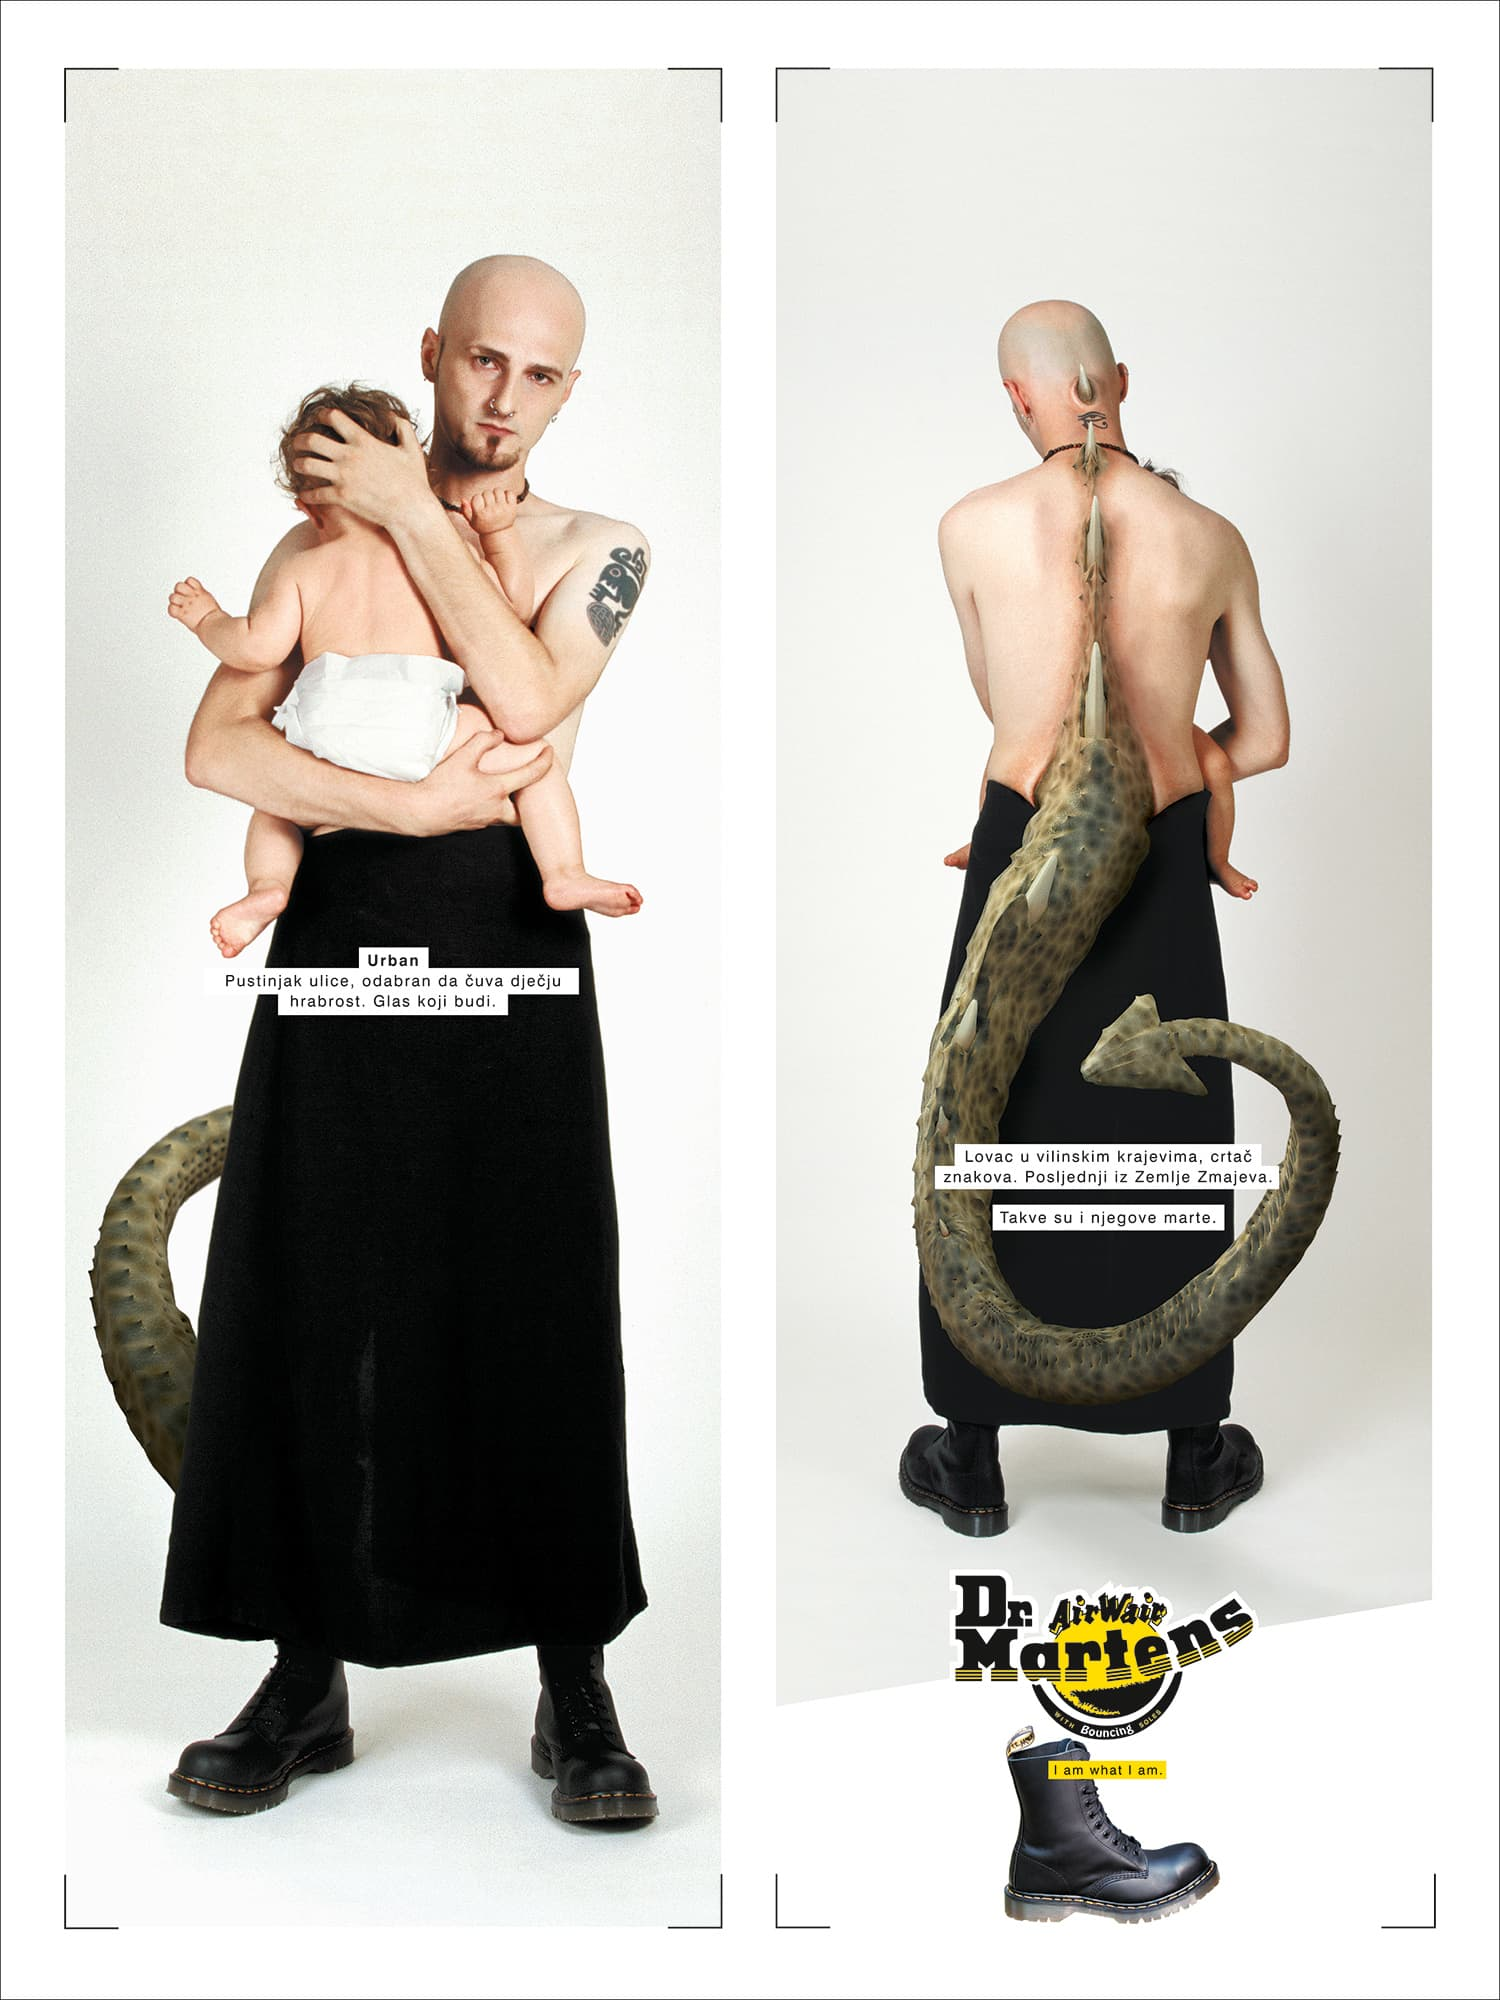 Dr. Martens – I am what I am